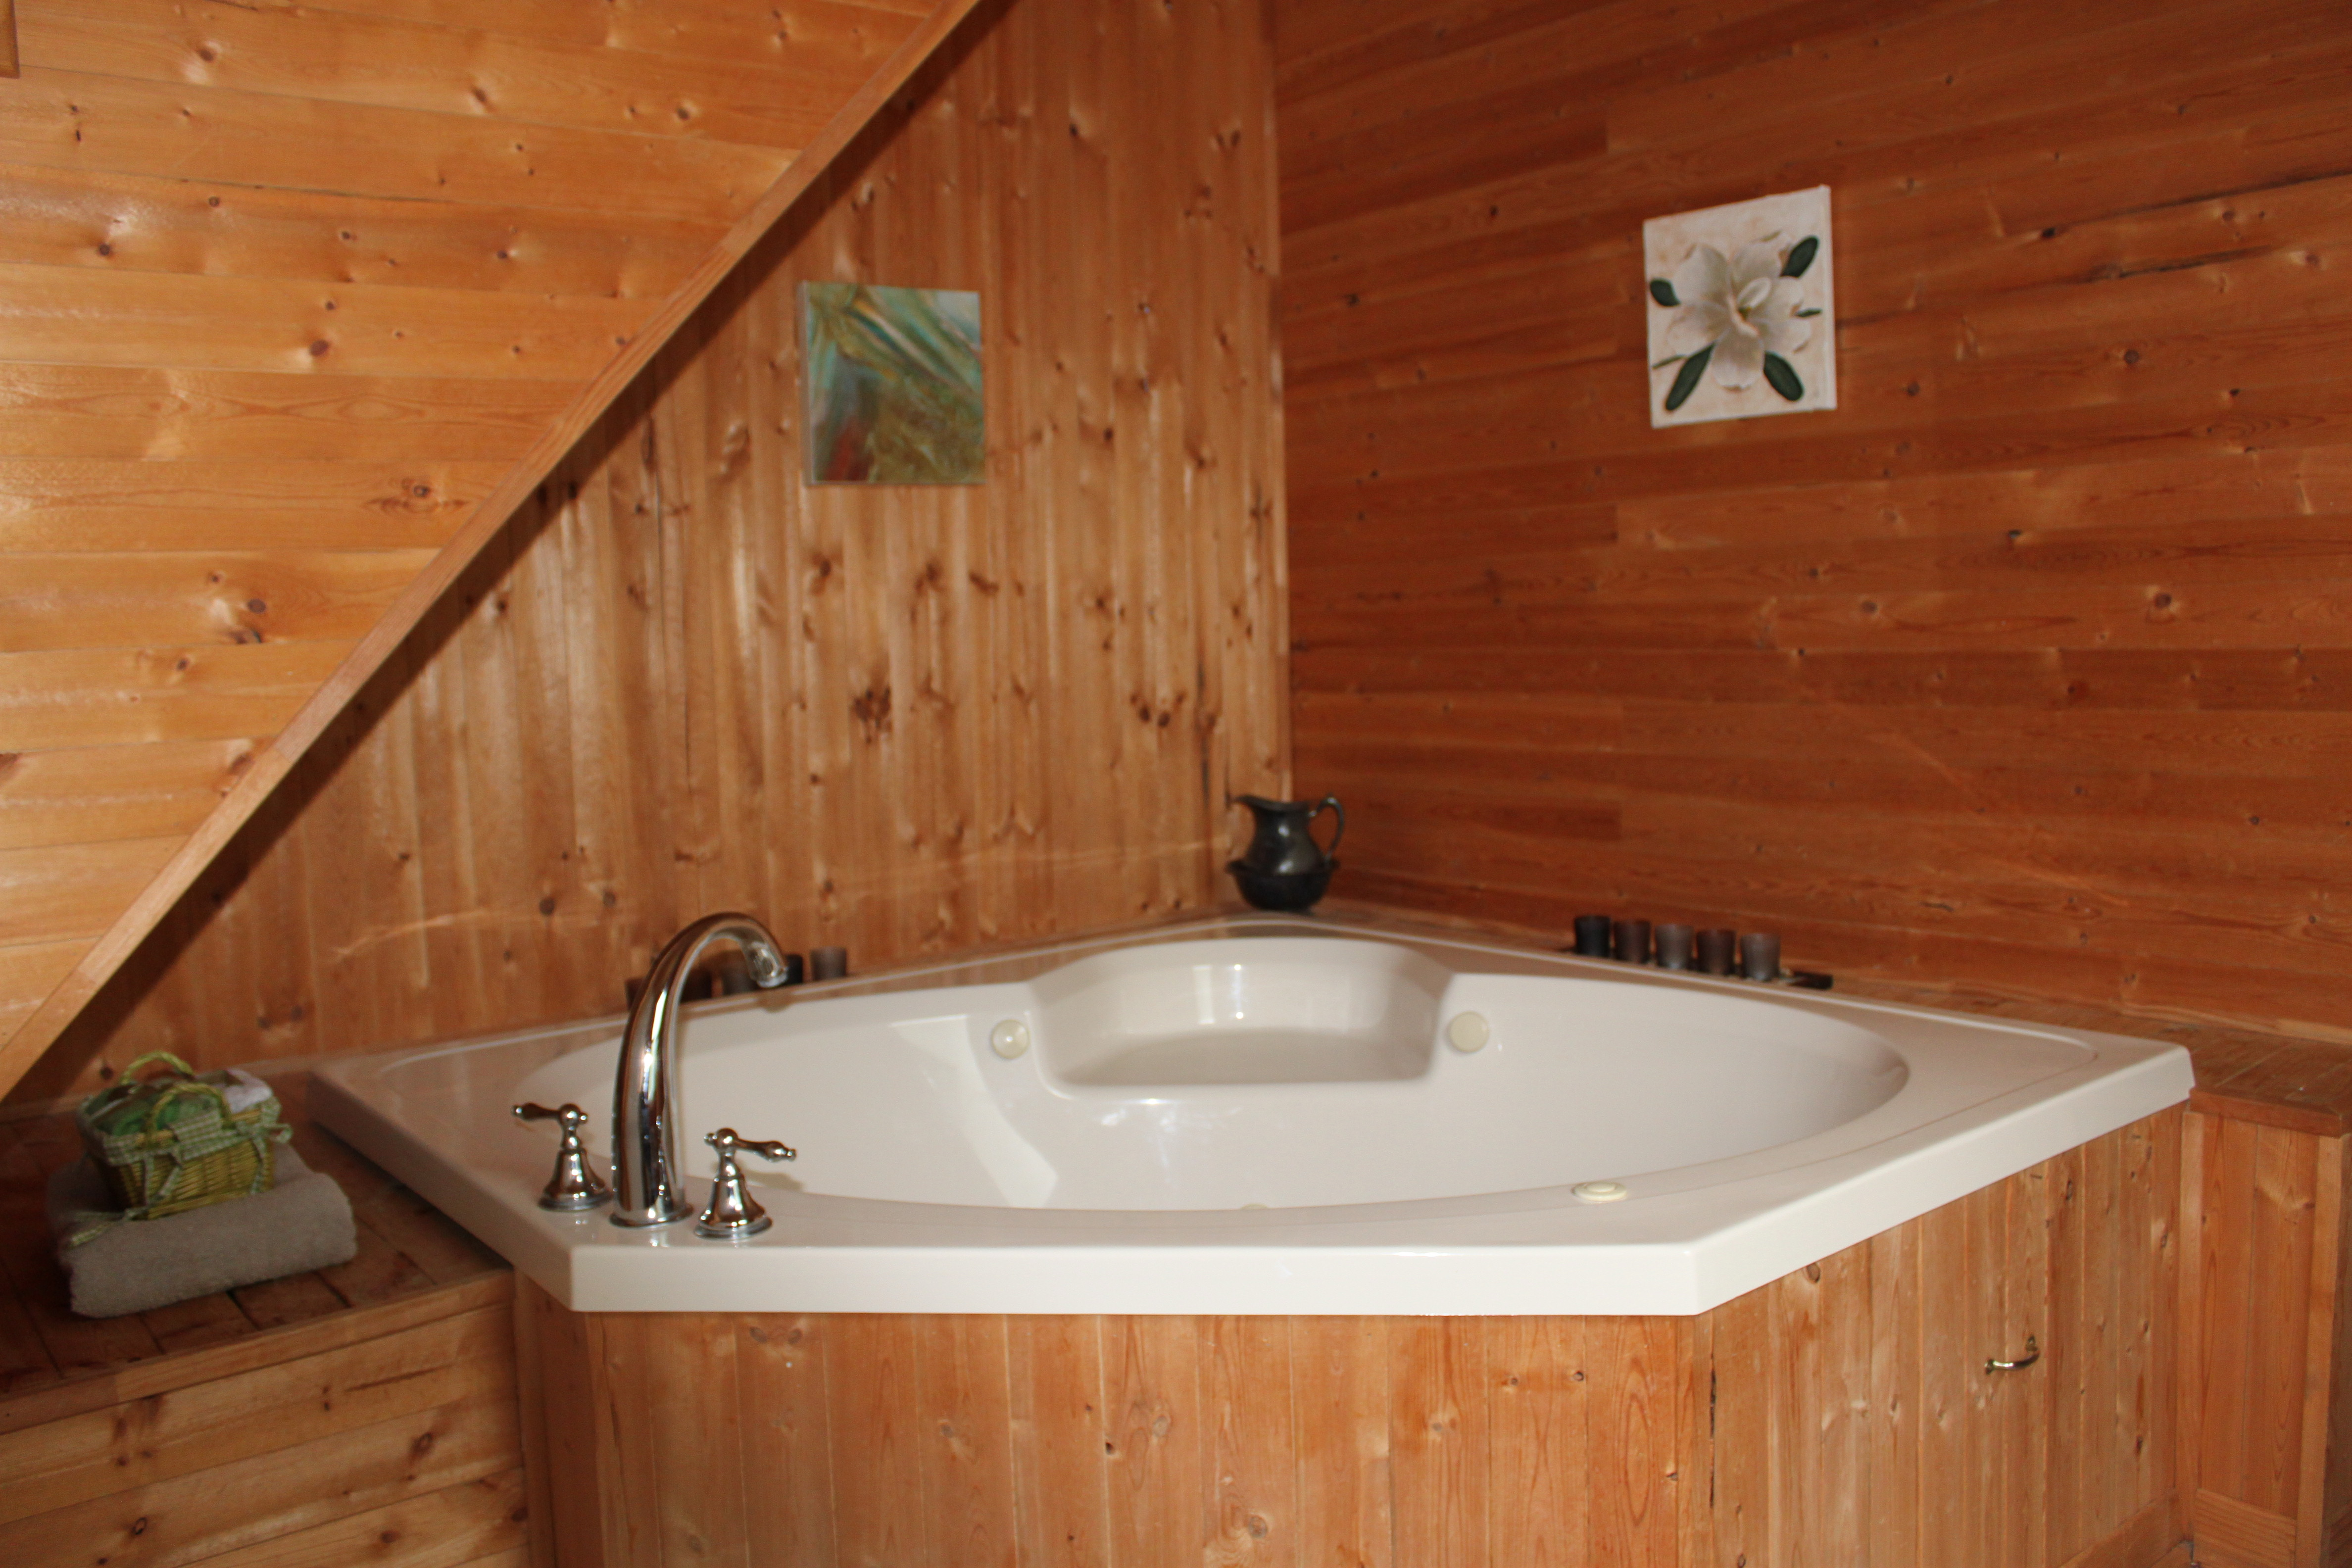 Spacious Bathroom with a Large Soaker Tub, Toilet and Sink.  All complimented with Gorgeous Wood Finishings.